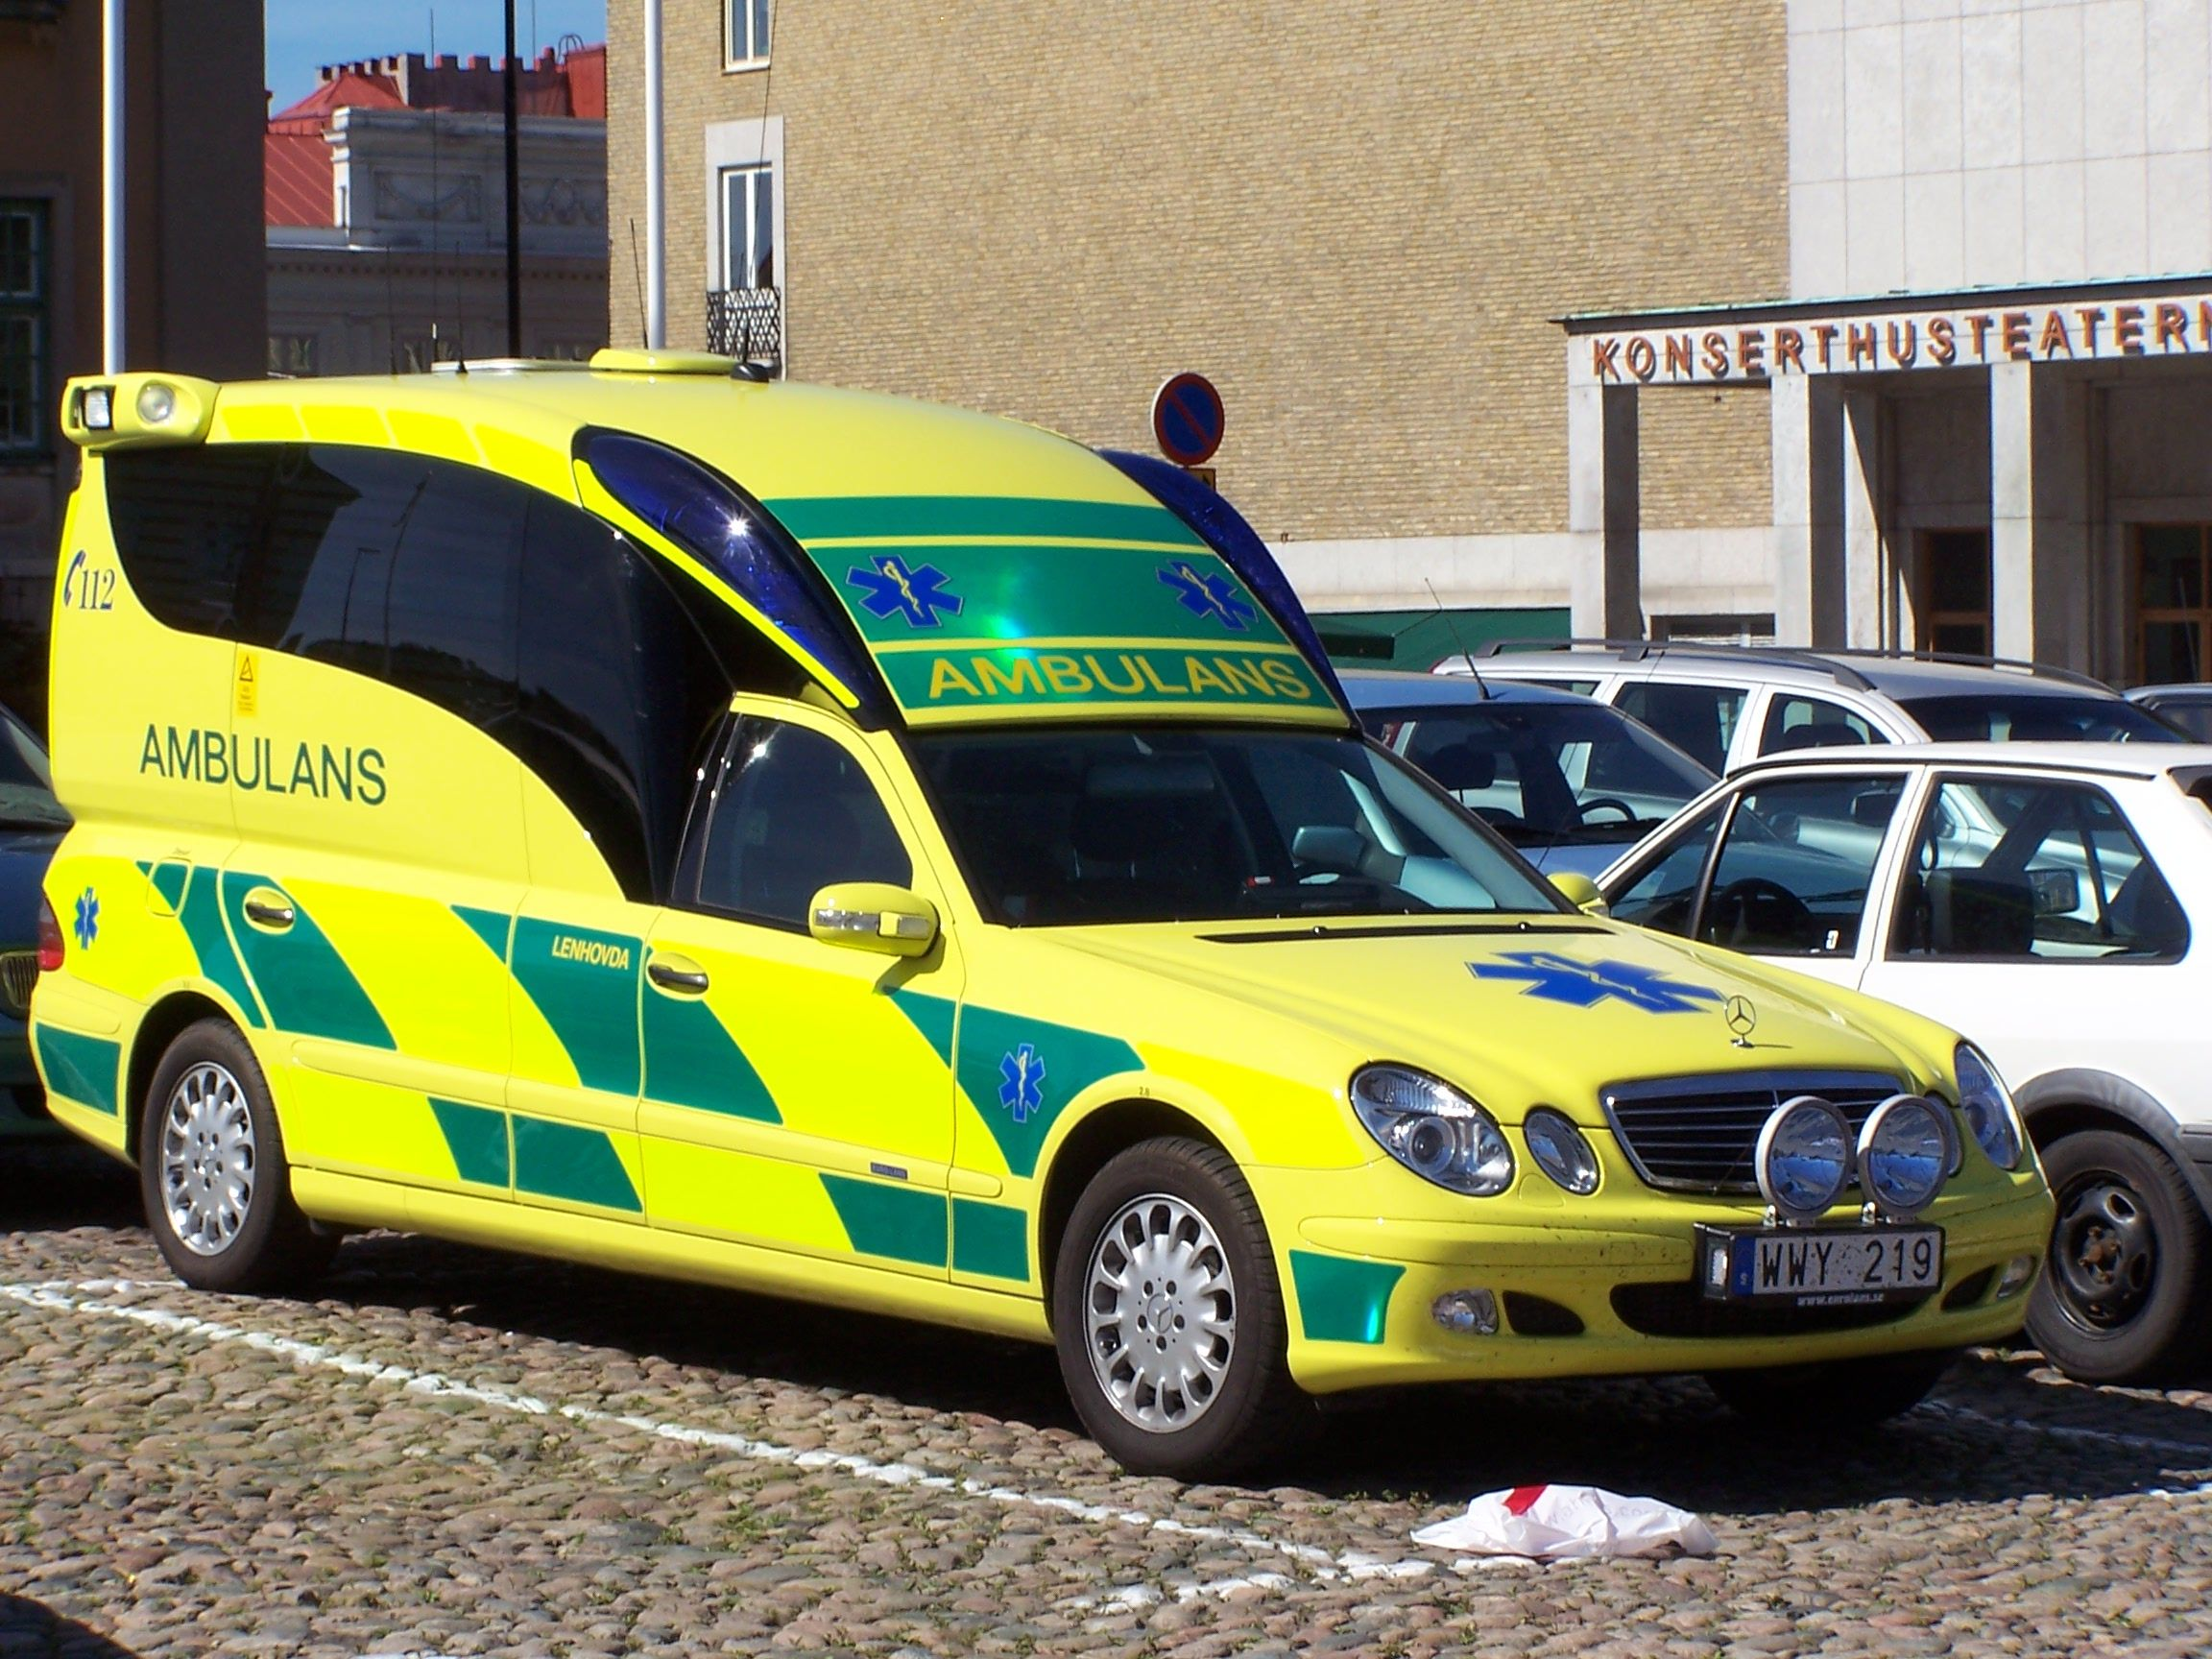 Swedish Ambulance Kronoberg Mercedes Benz E Class